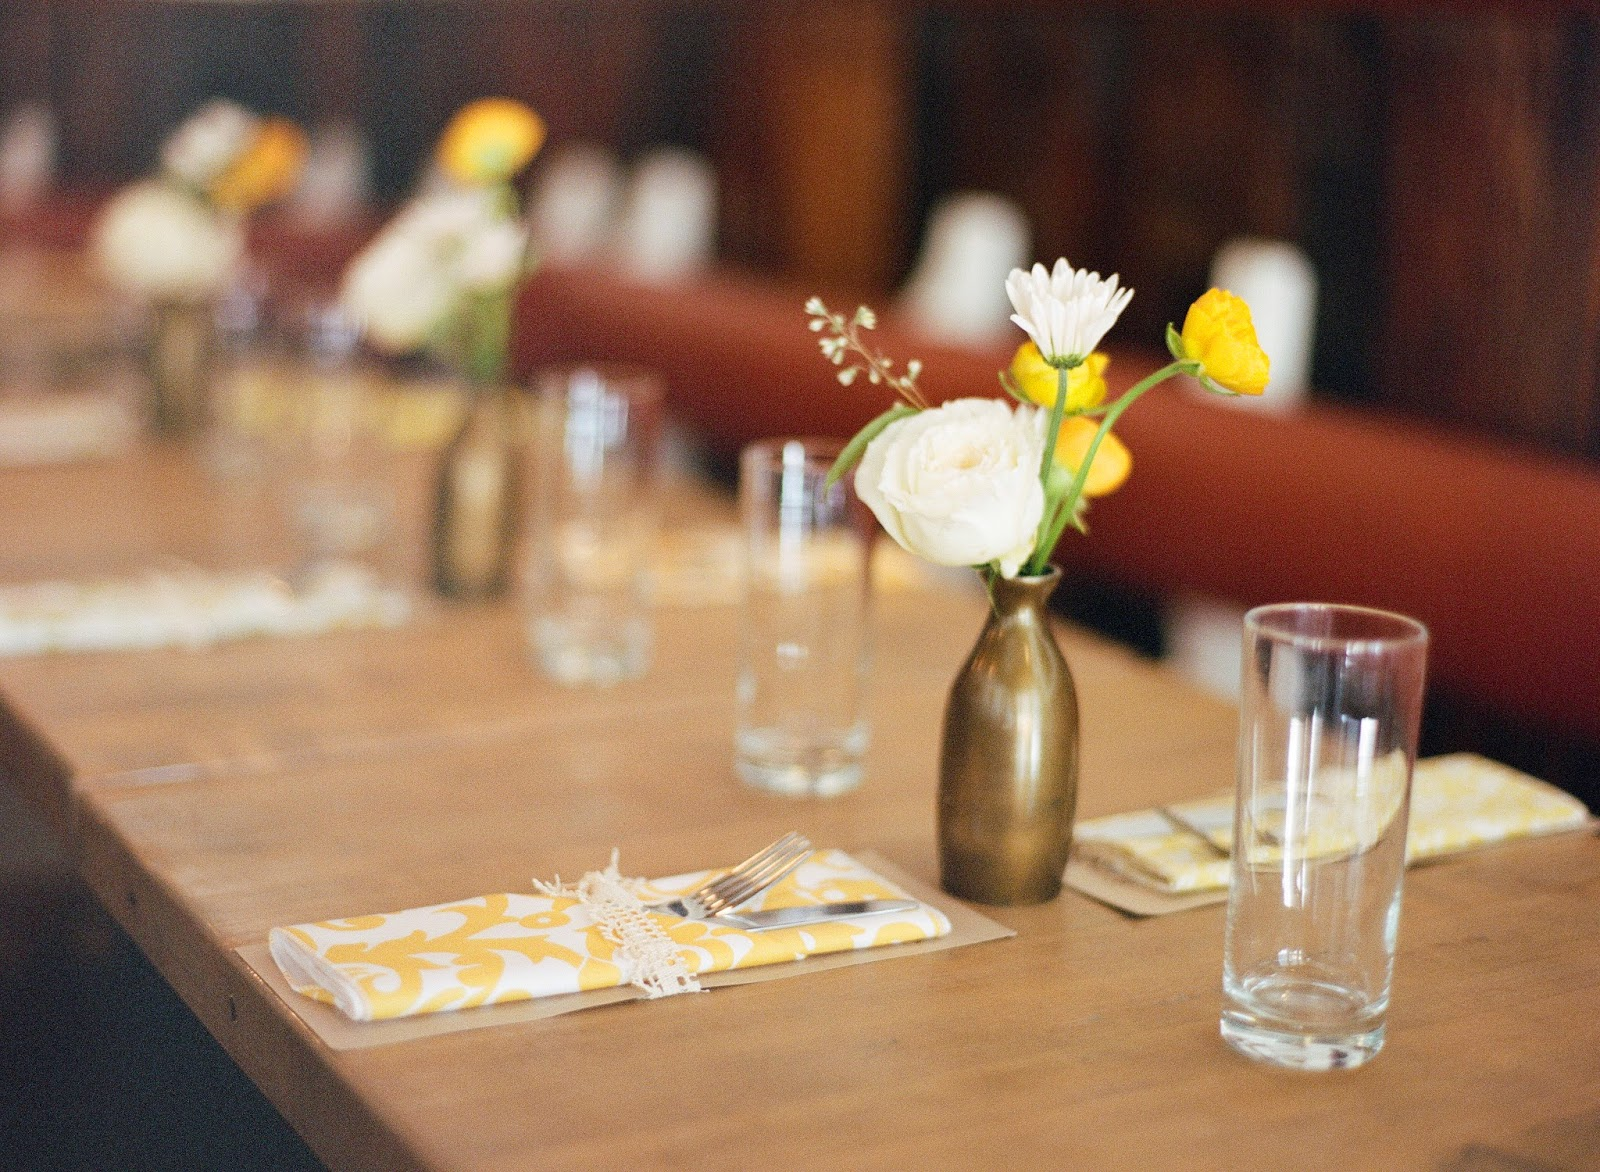 yellow and white spring wedding flowers in antique brass vases with homemade yellow napkin place settings at an intimate brooklyn, new york restaurant wedding dinner